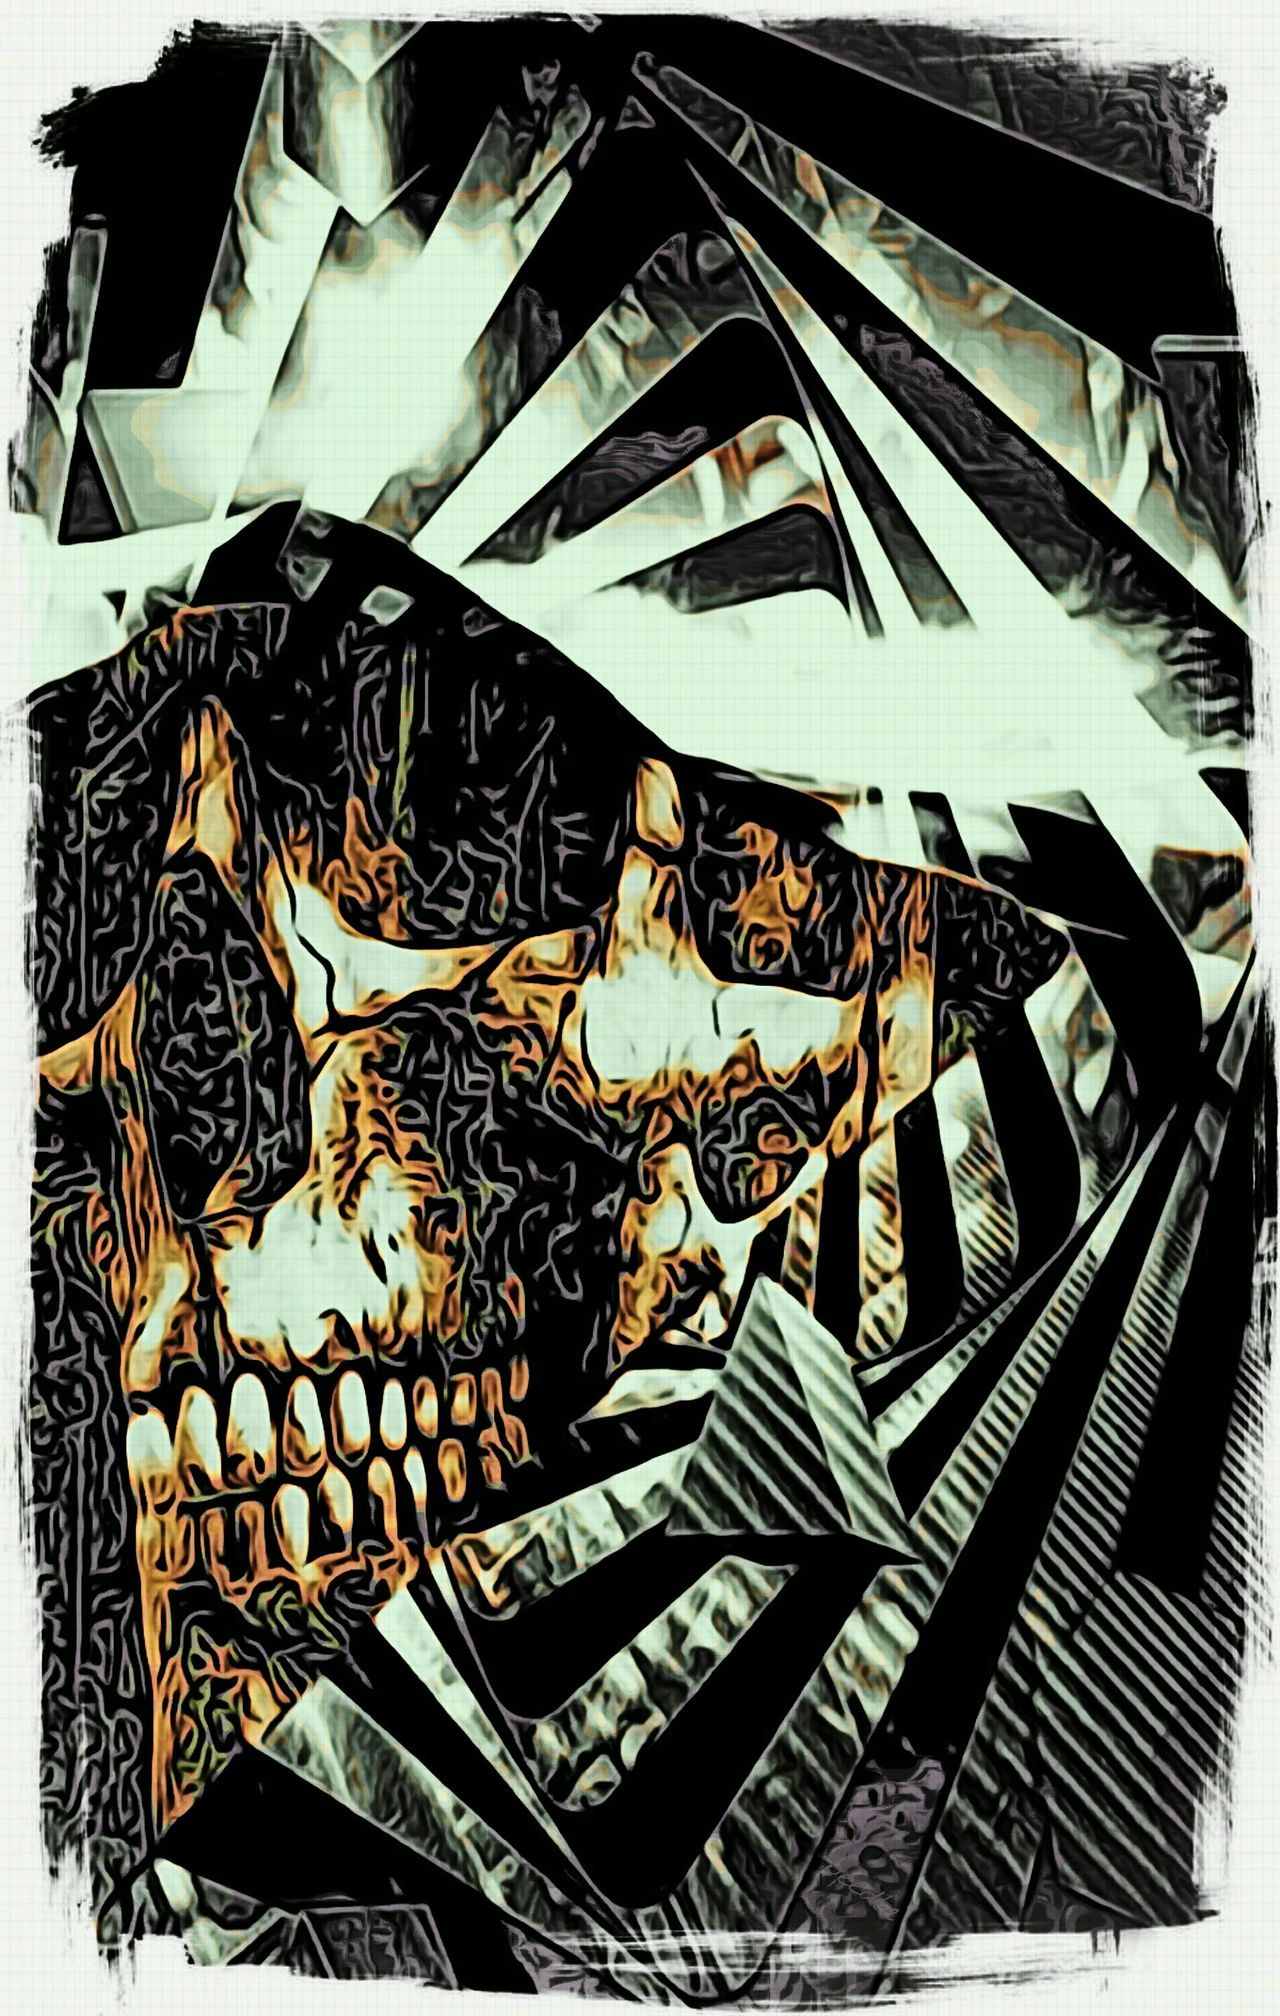 I love the Jixipix app for creating Moku Hanga on Android. My original composition looked good, but this puts it over the top. I love this one! Digital Art Photo Manipulation Getting Inspired Check This Out Moku Hanga Jixipix Art ArtWork Skullart Skull Skull Art Art Gallery My Artwork